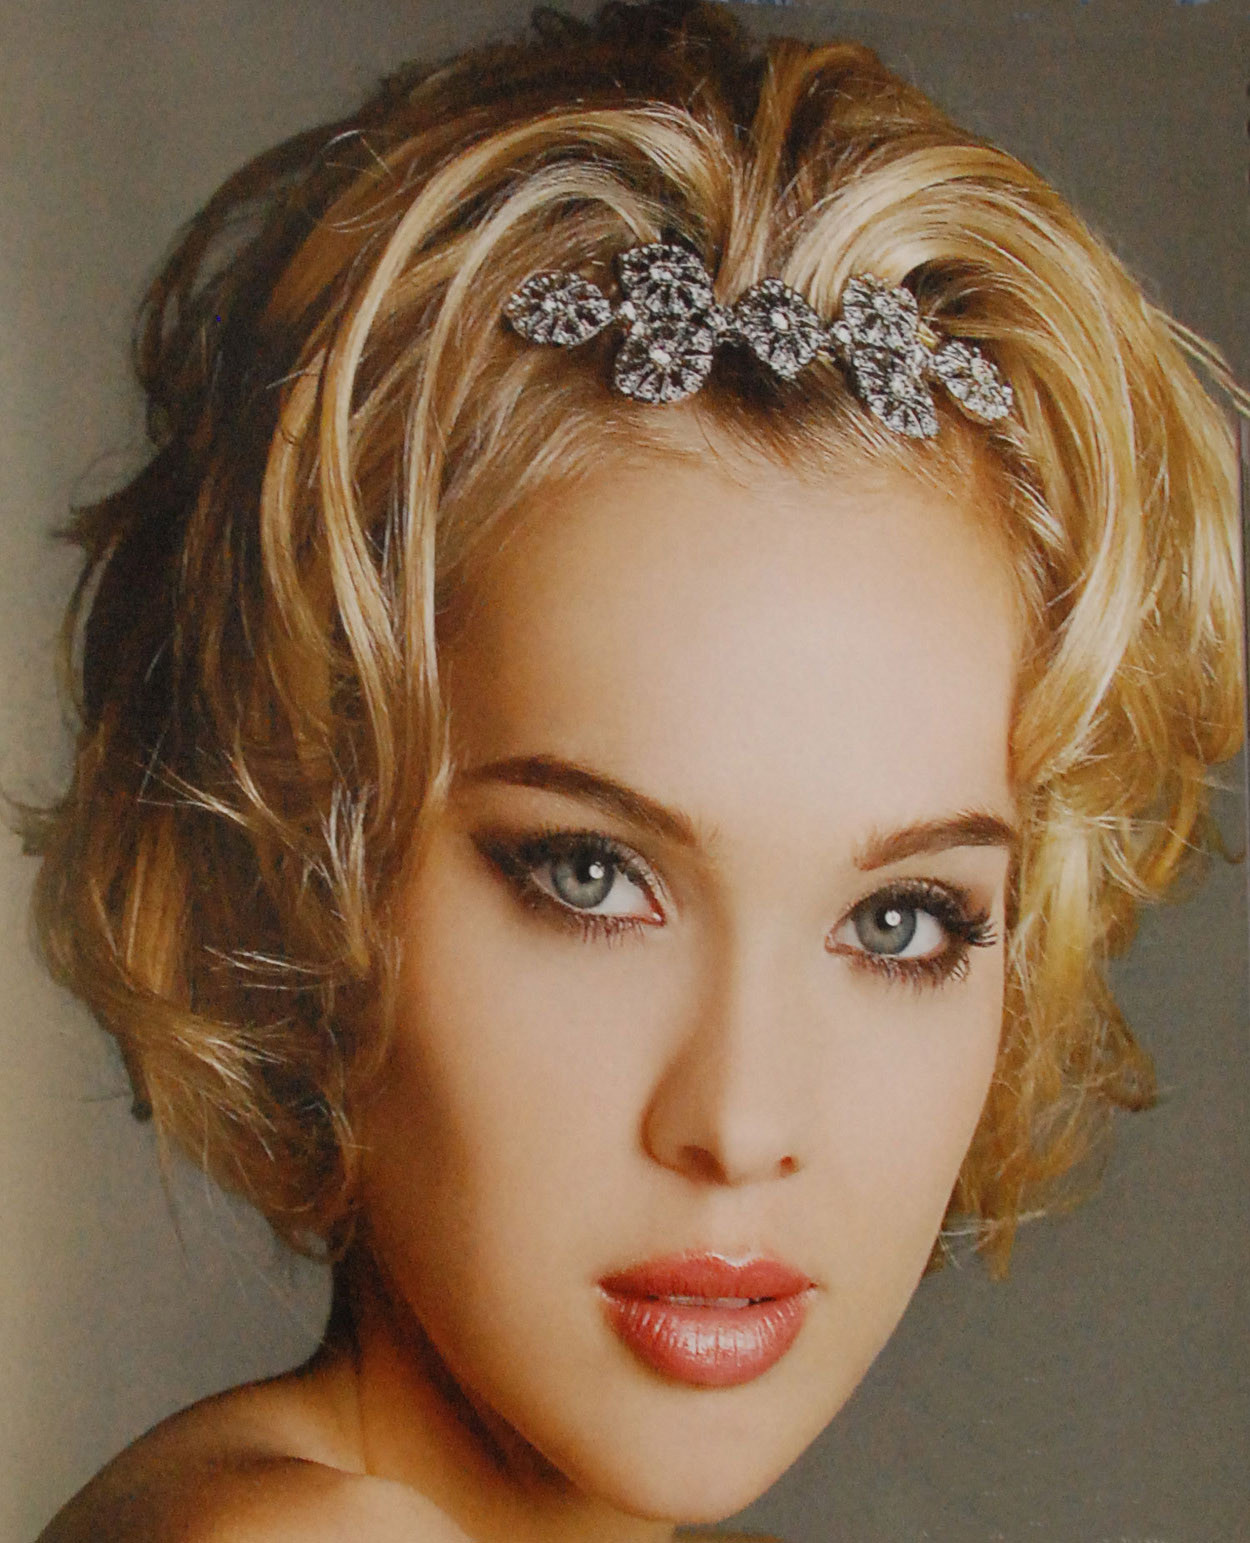 Best ideas about Hairstyles For Short Hair For Girls . Save or Pin China Hairstyles For Girls Now.